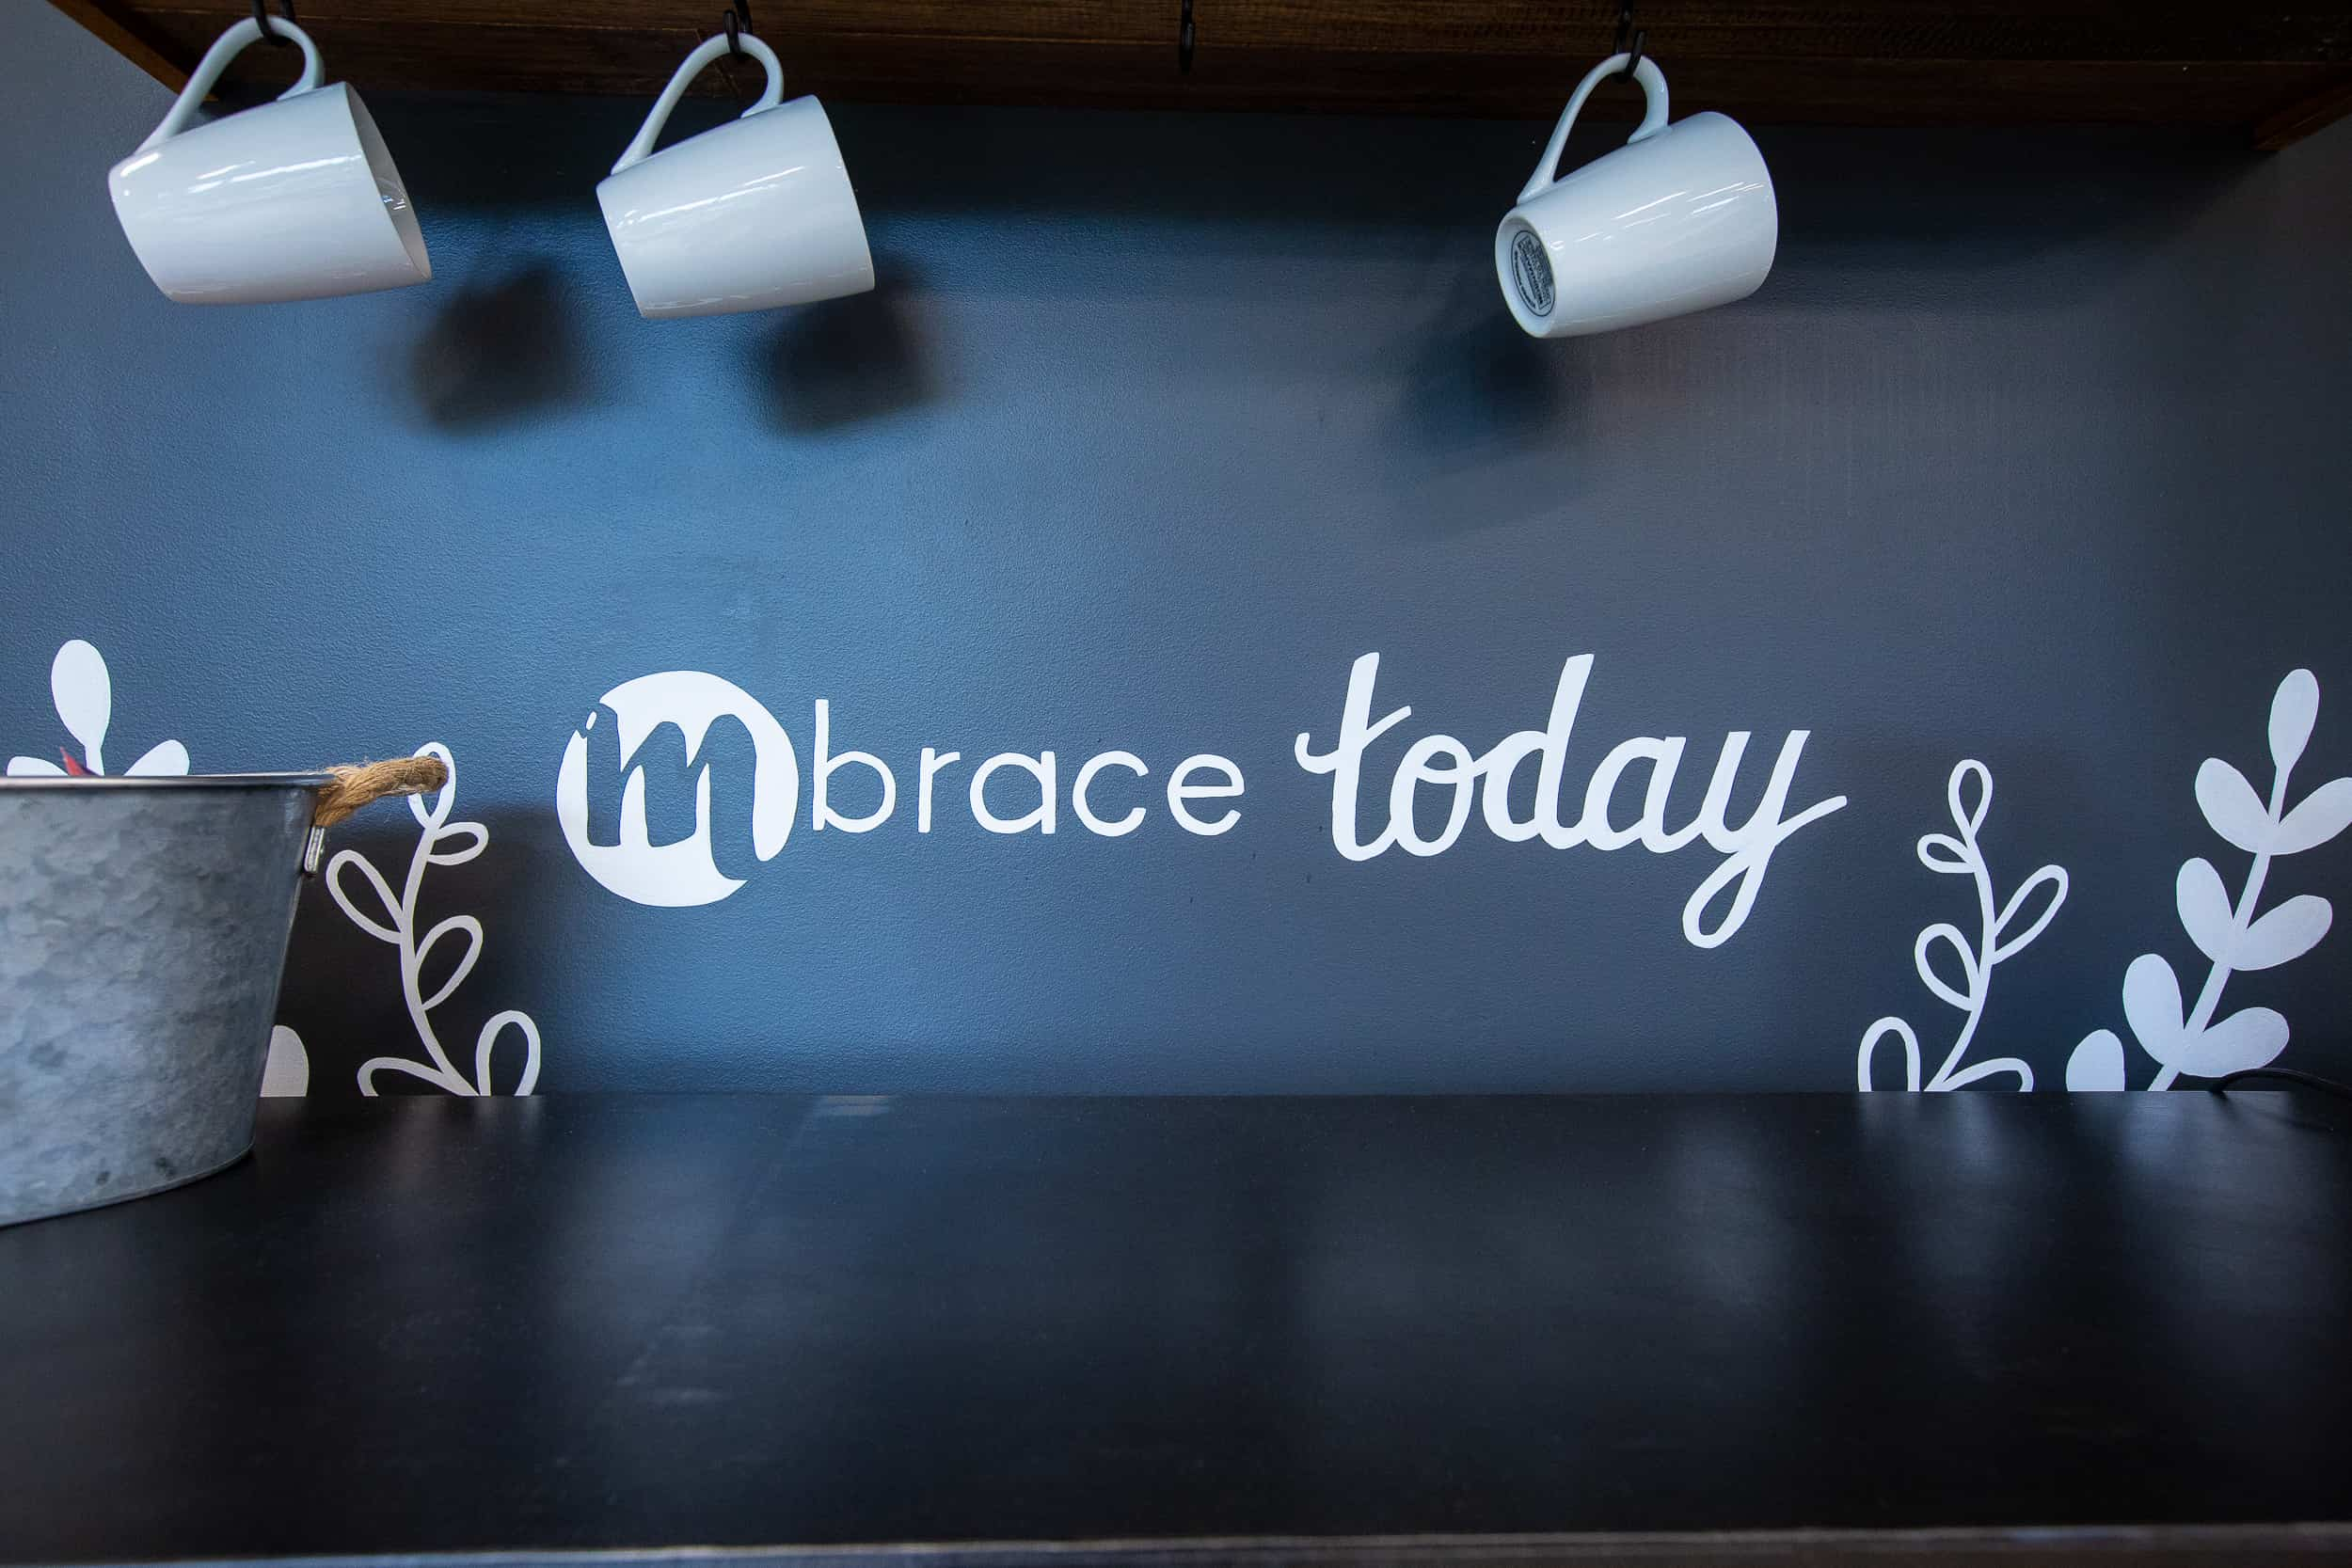 Mbrace Orthodontics Falmouth Orthodontics Office Mbrace Office Images 19 - Why did we make a new website?